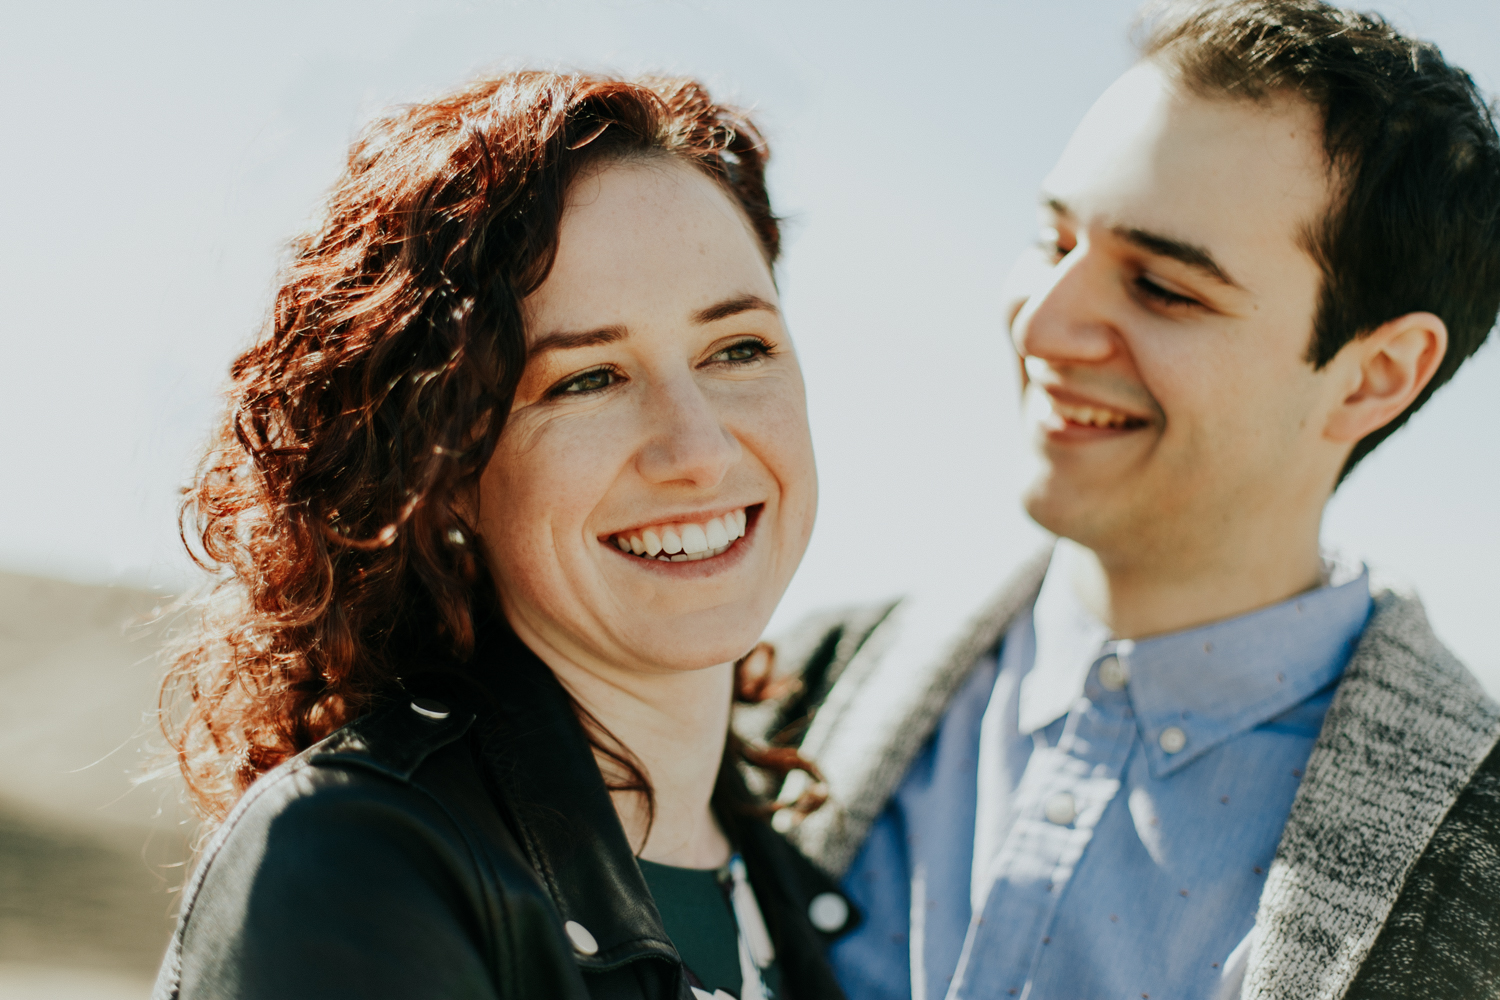 lethbridge-photographer-love-and-be-loved-photography-jodie-adam-coulee-hillside-engagement-photo-image-picture-8.jpg